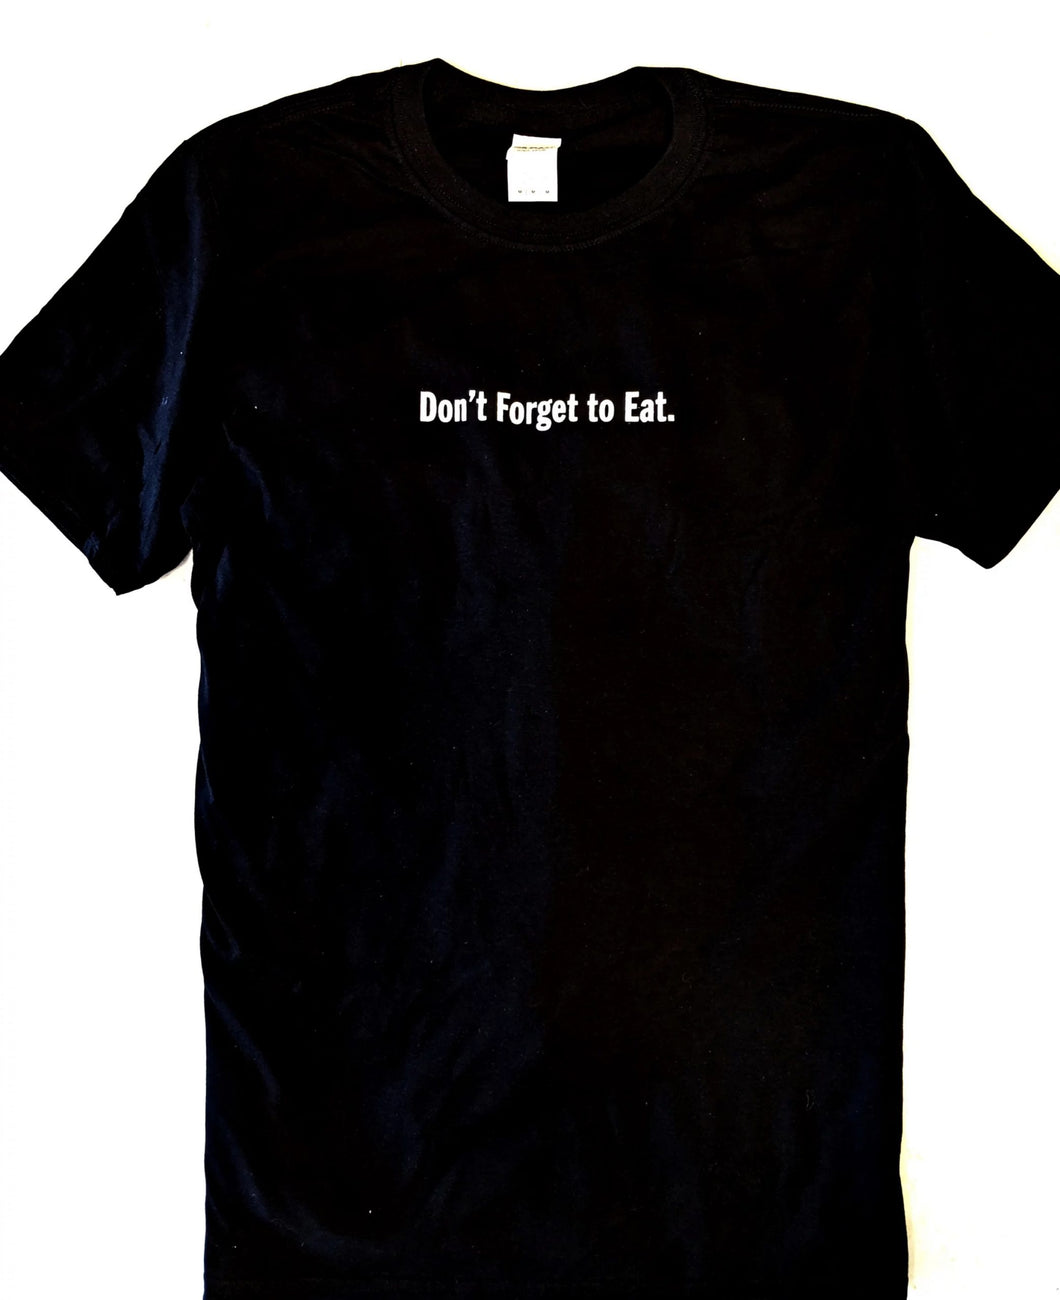 Don't Forget to Eat. T-Shirt